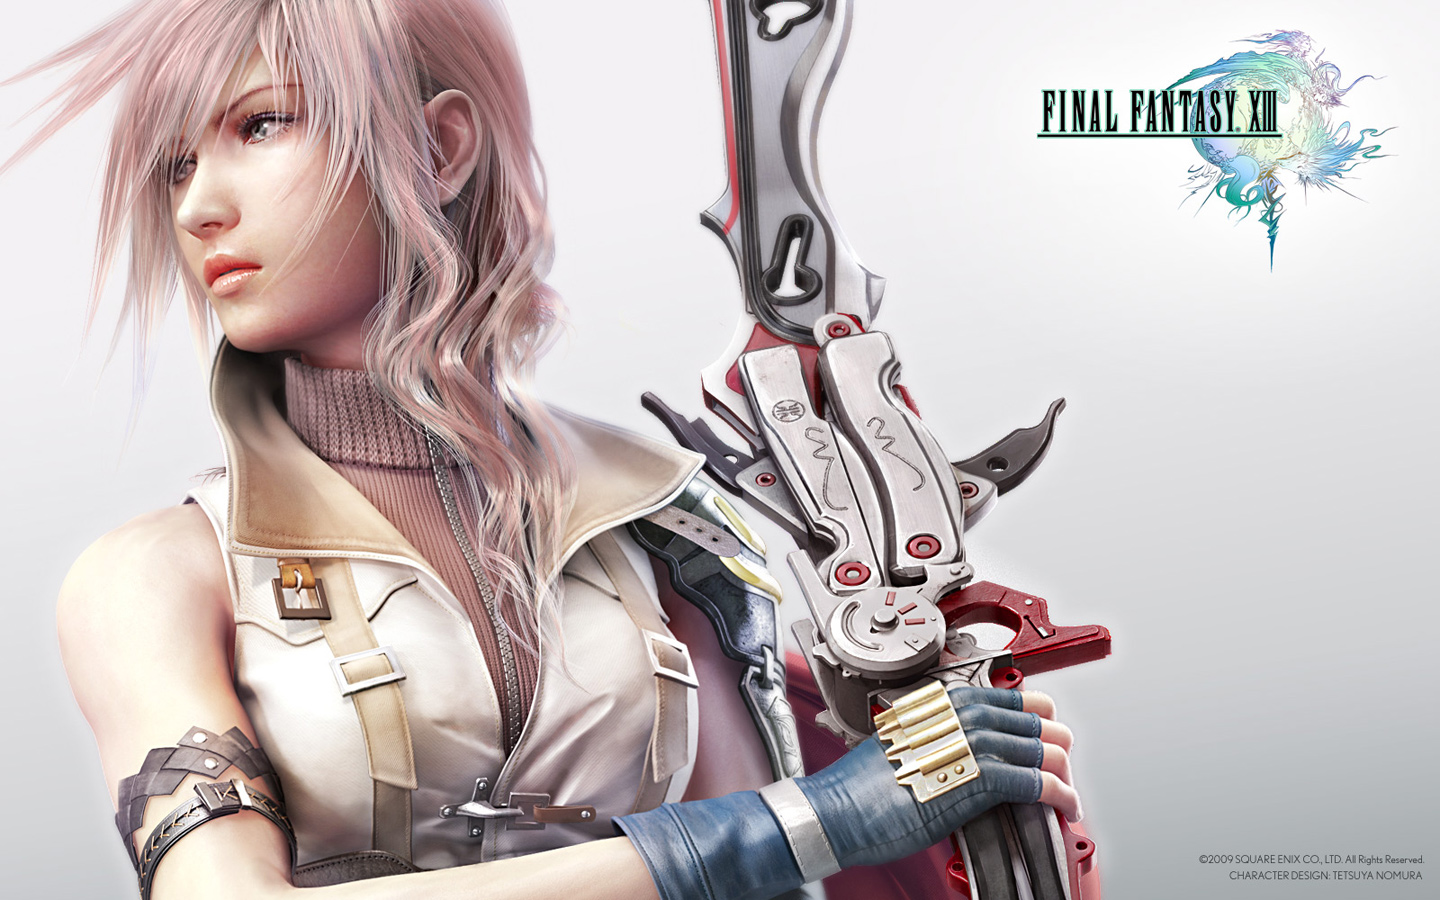 Final Fantasy XIII Wallpapers   Final Fantasy FXN Network 1440x900